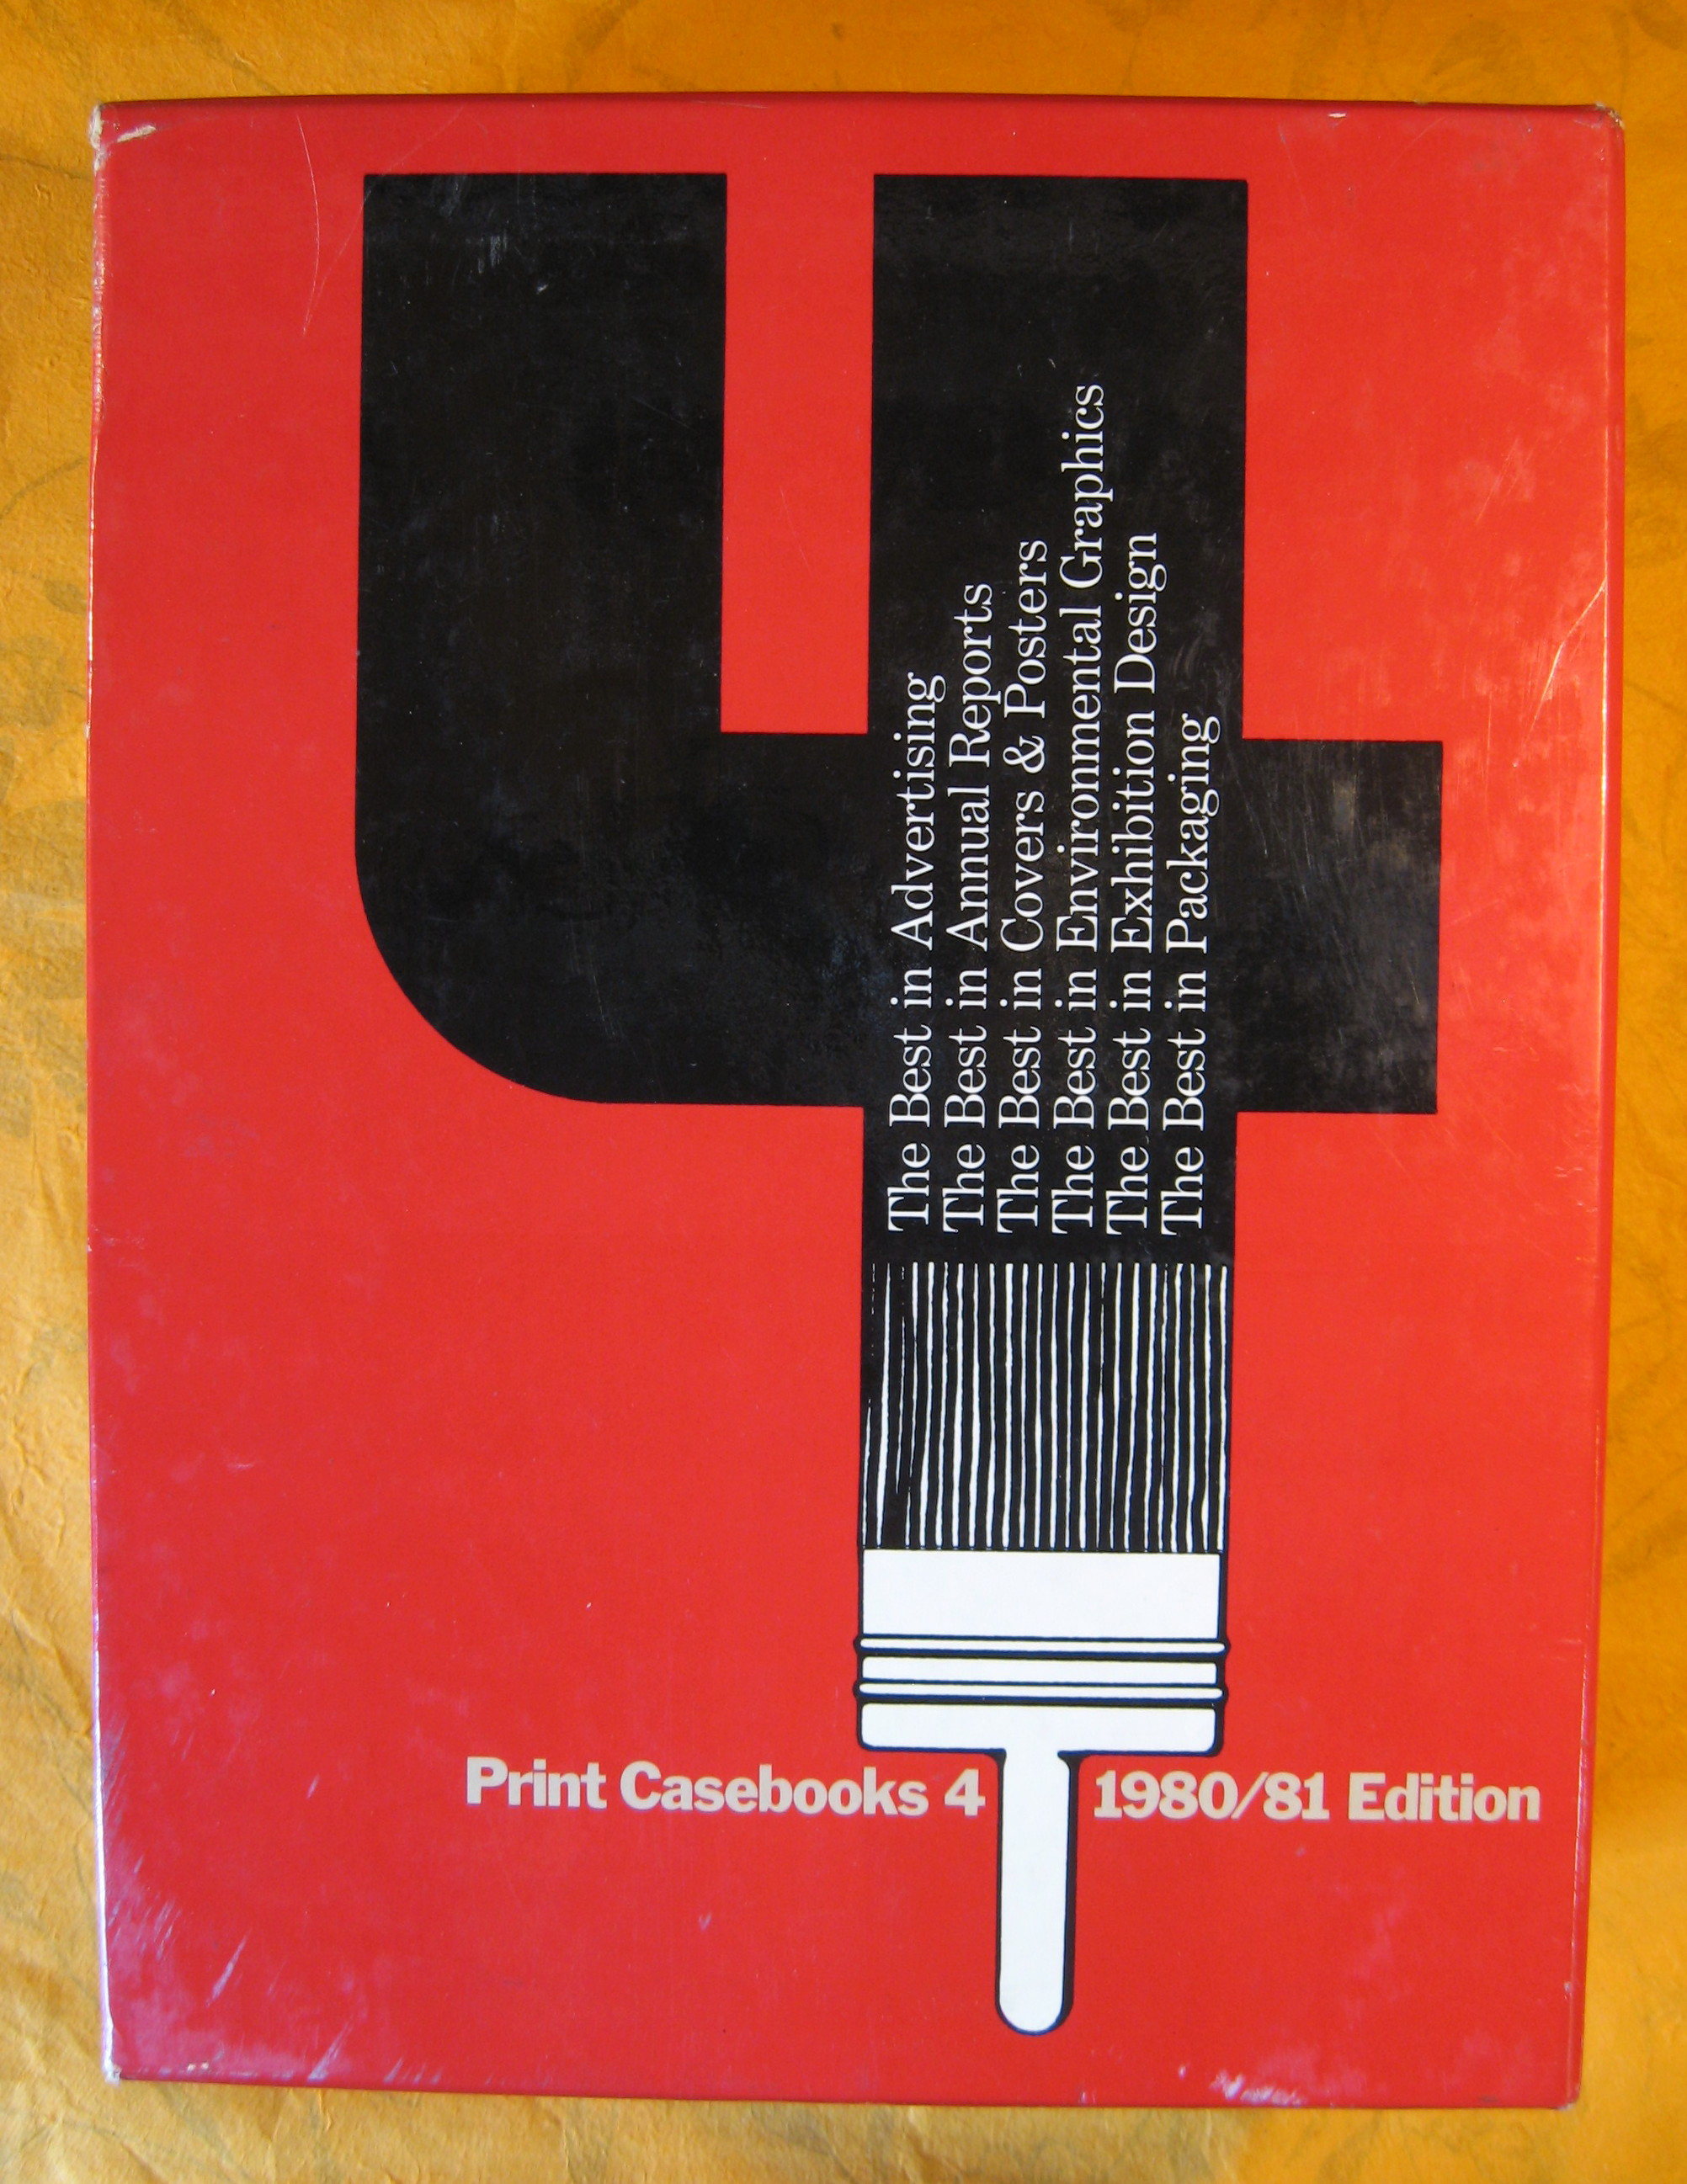 Image for Print Casebooks 4 1980/81 Edition - Six Volumes in Slipcase